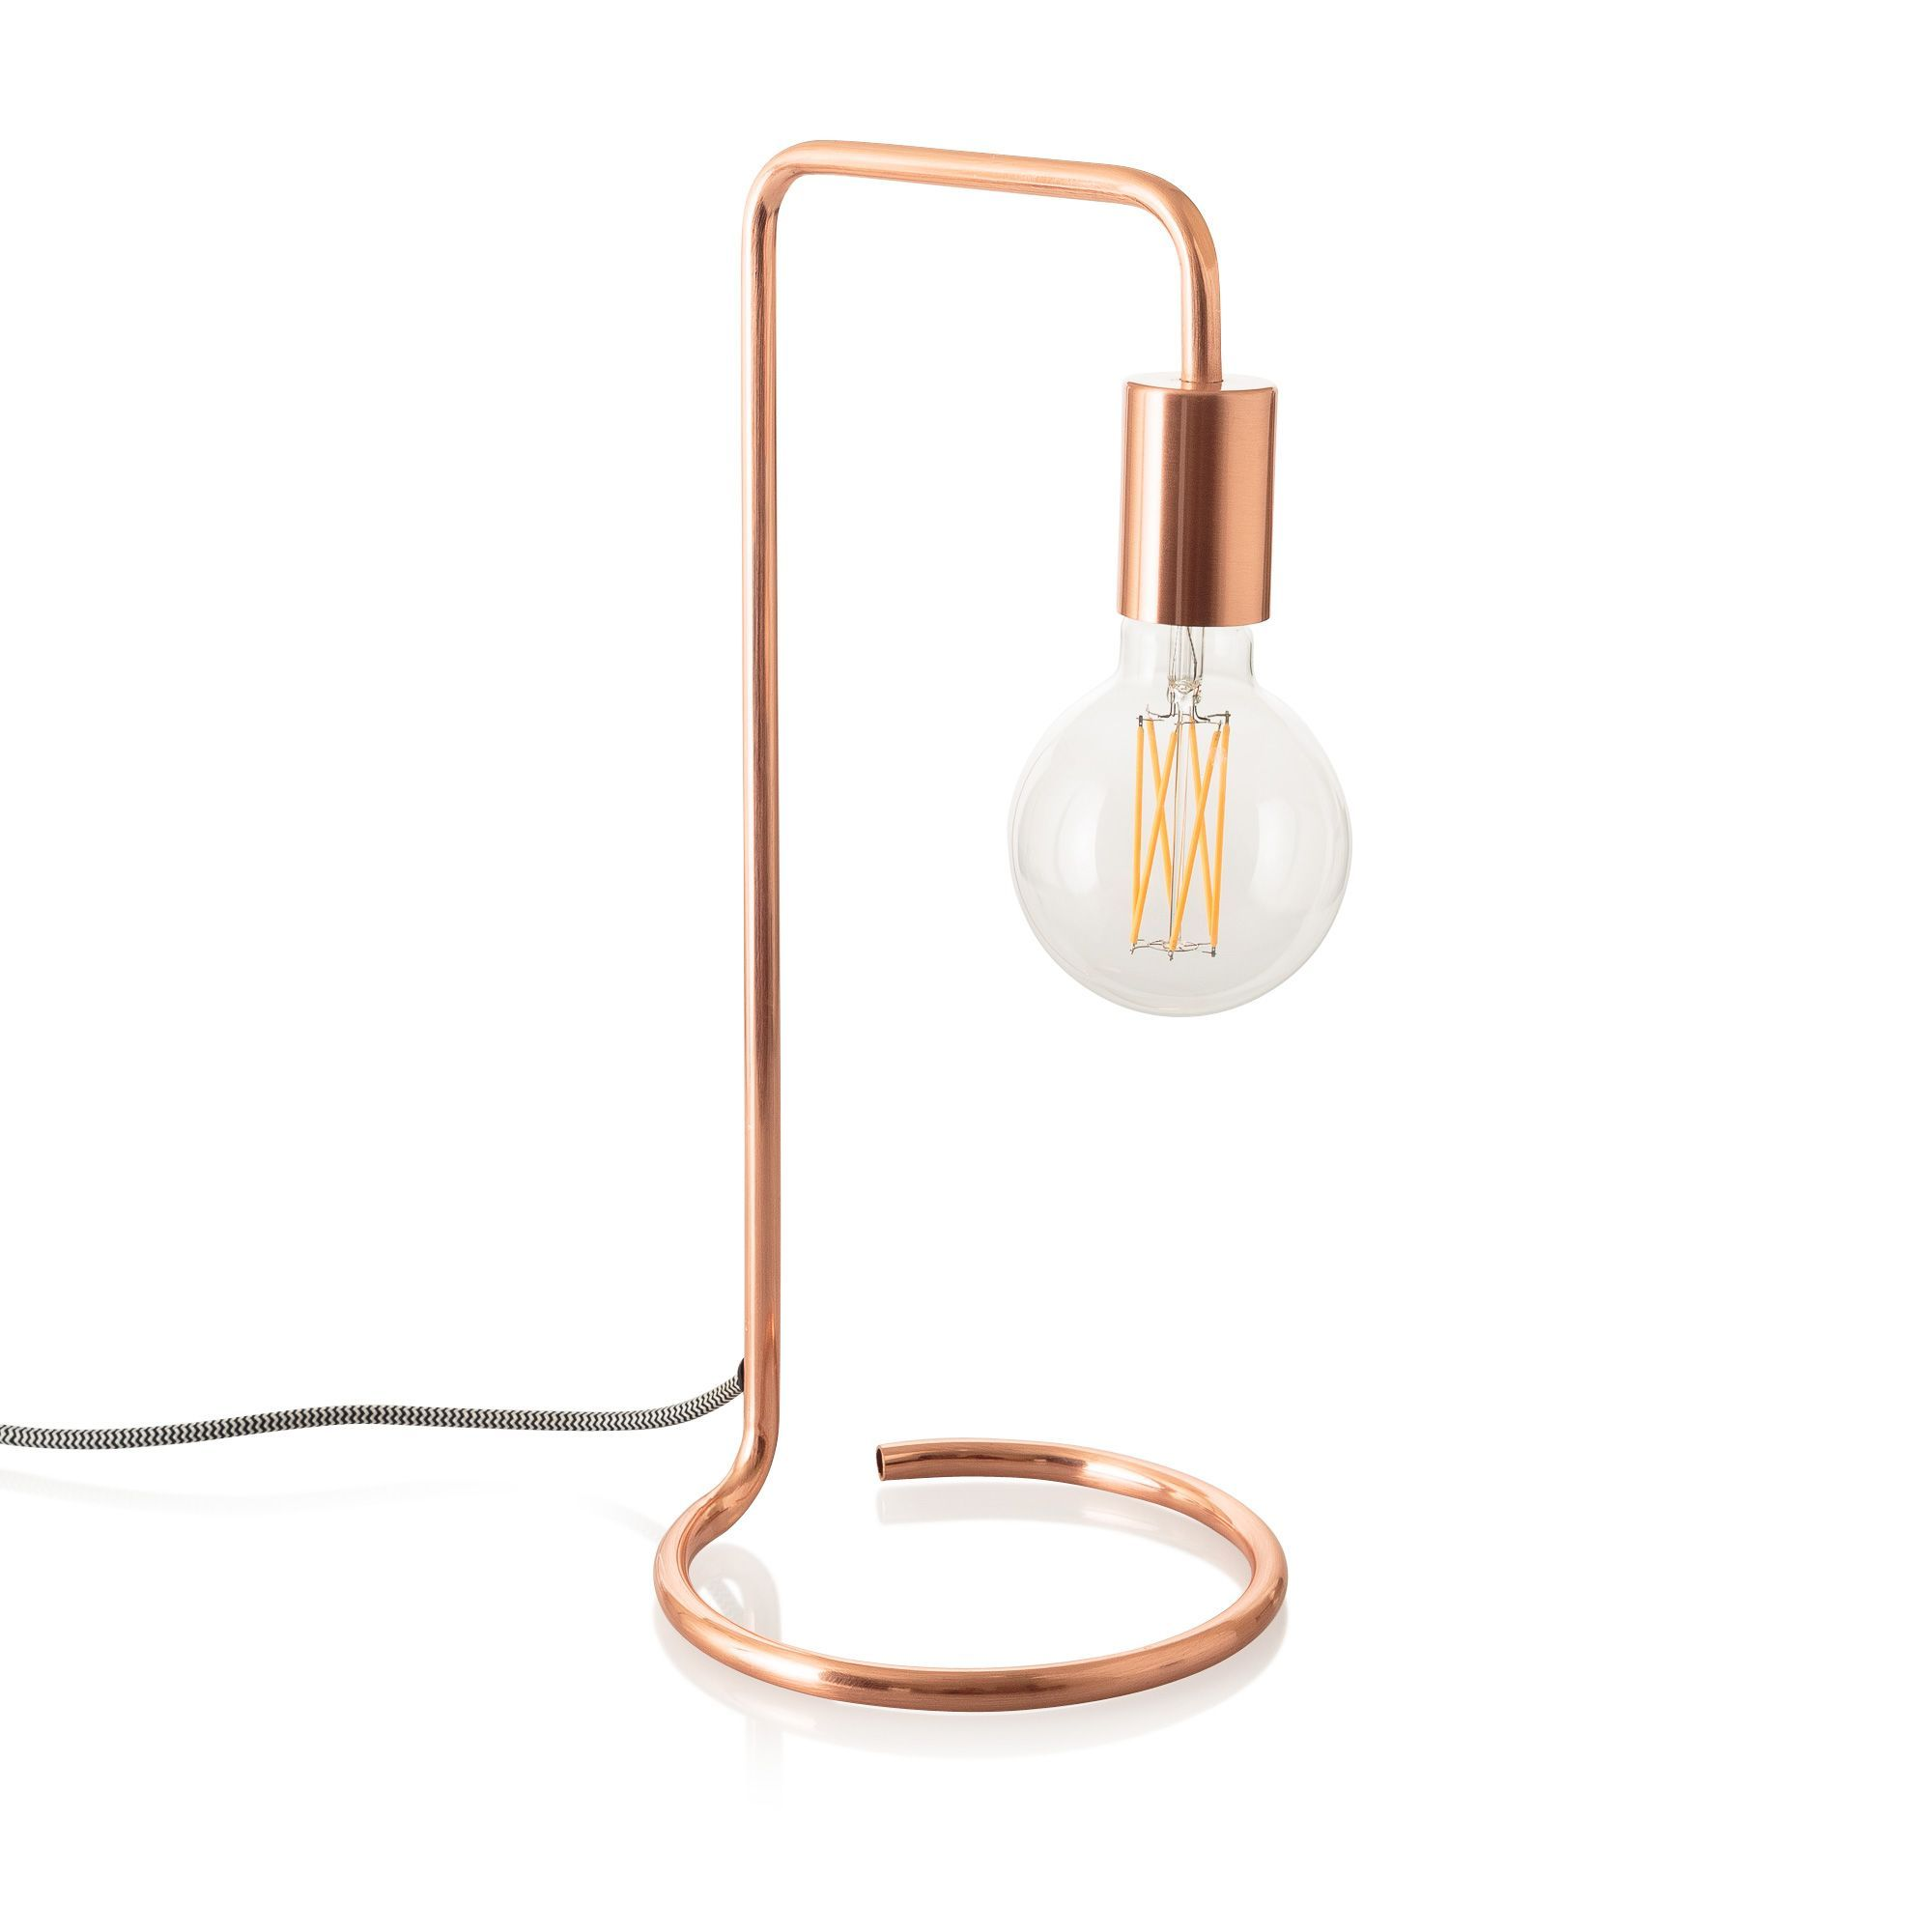 Copper Celio Table Lamp At Oliver Bonas This Side Light Is So Now For Bedside Tables And Desks